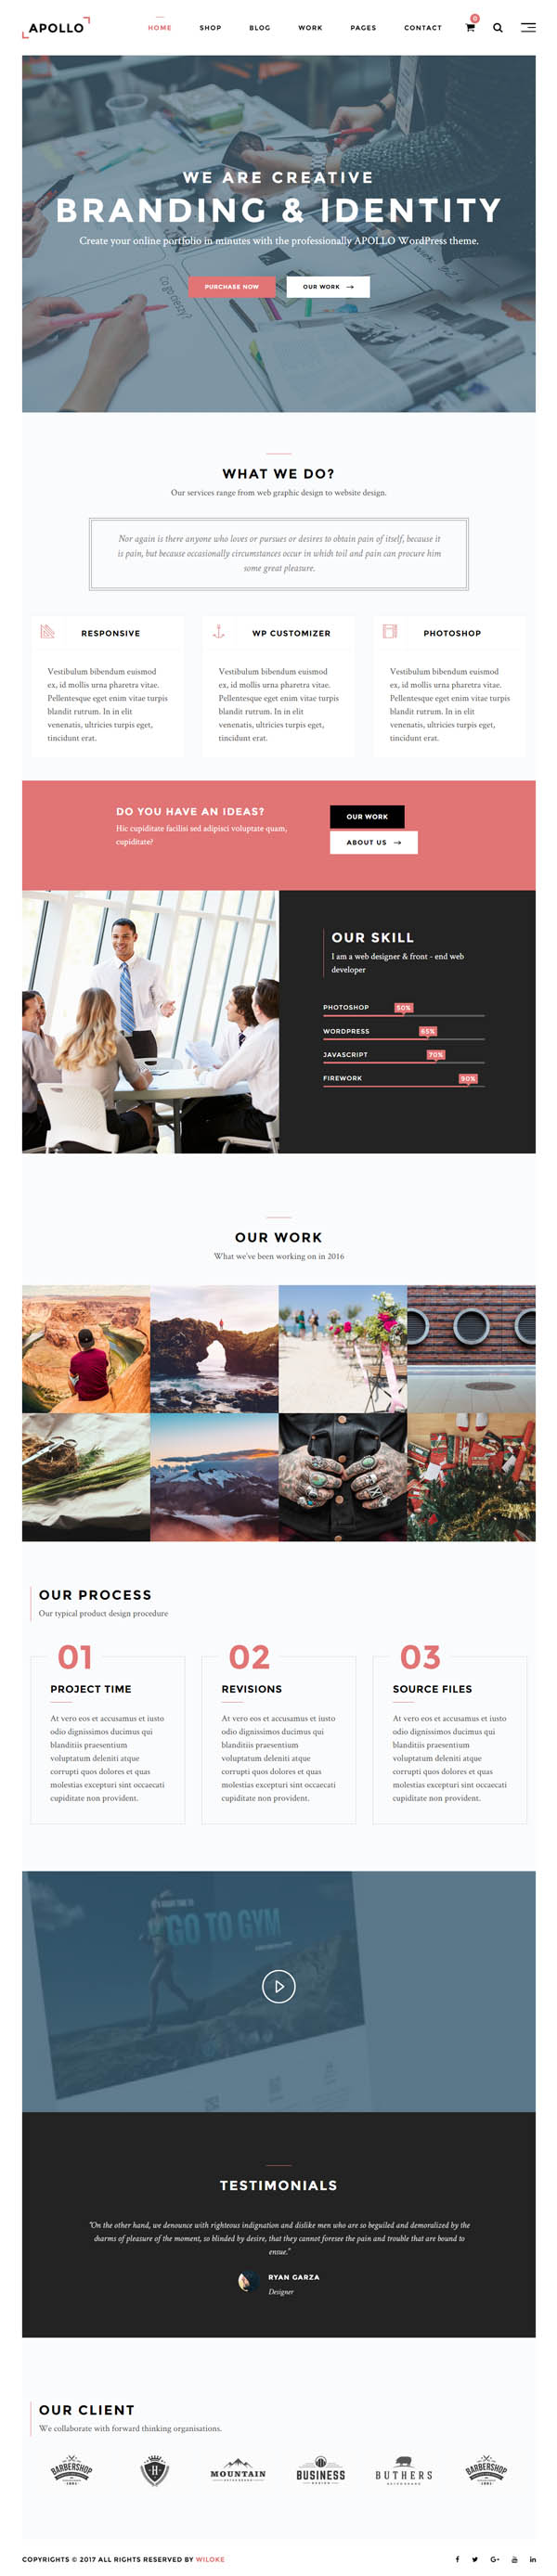 Apollo : Responsive Multi-Purpose WordPress Theme